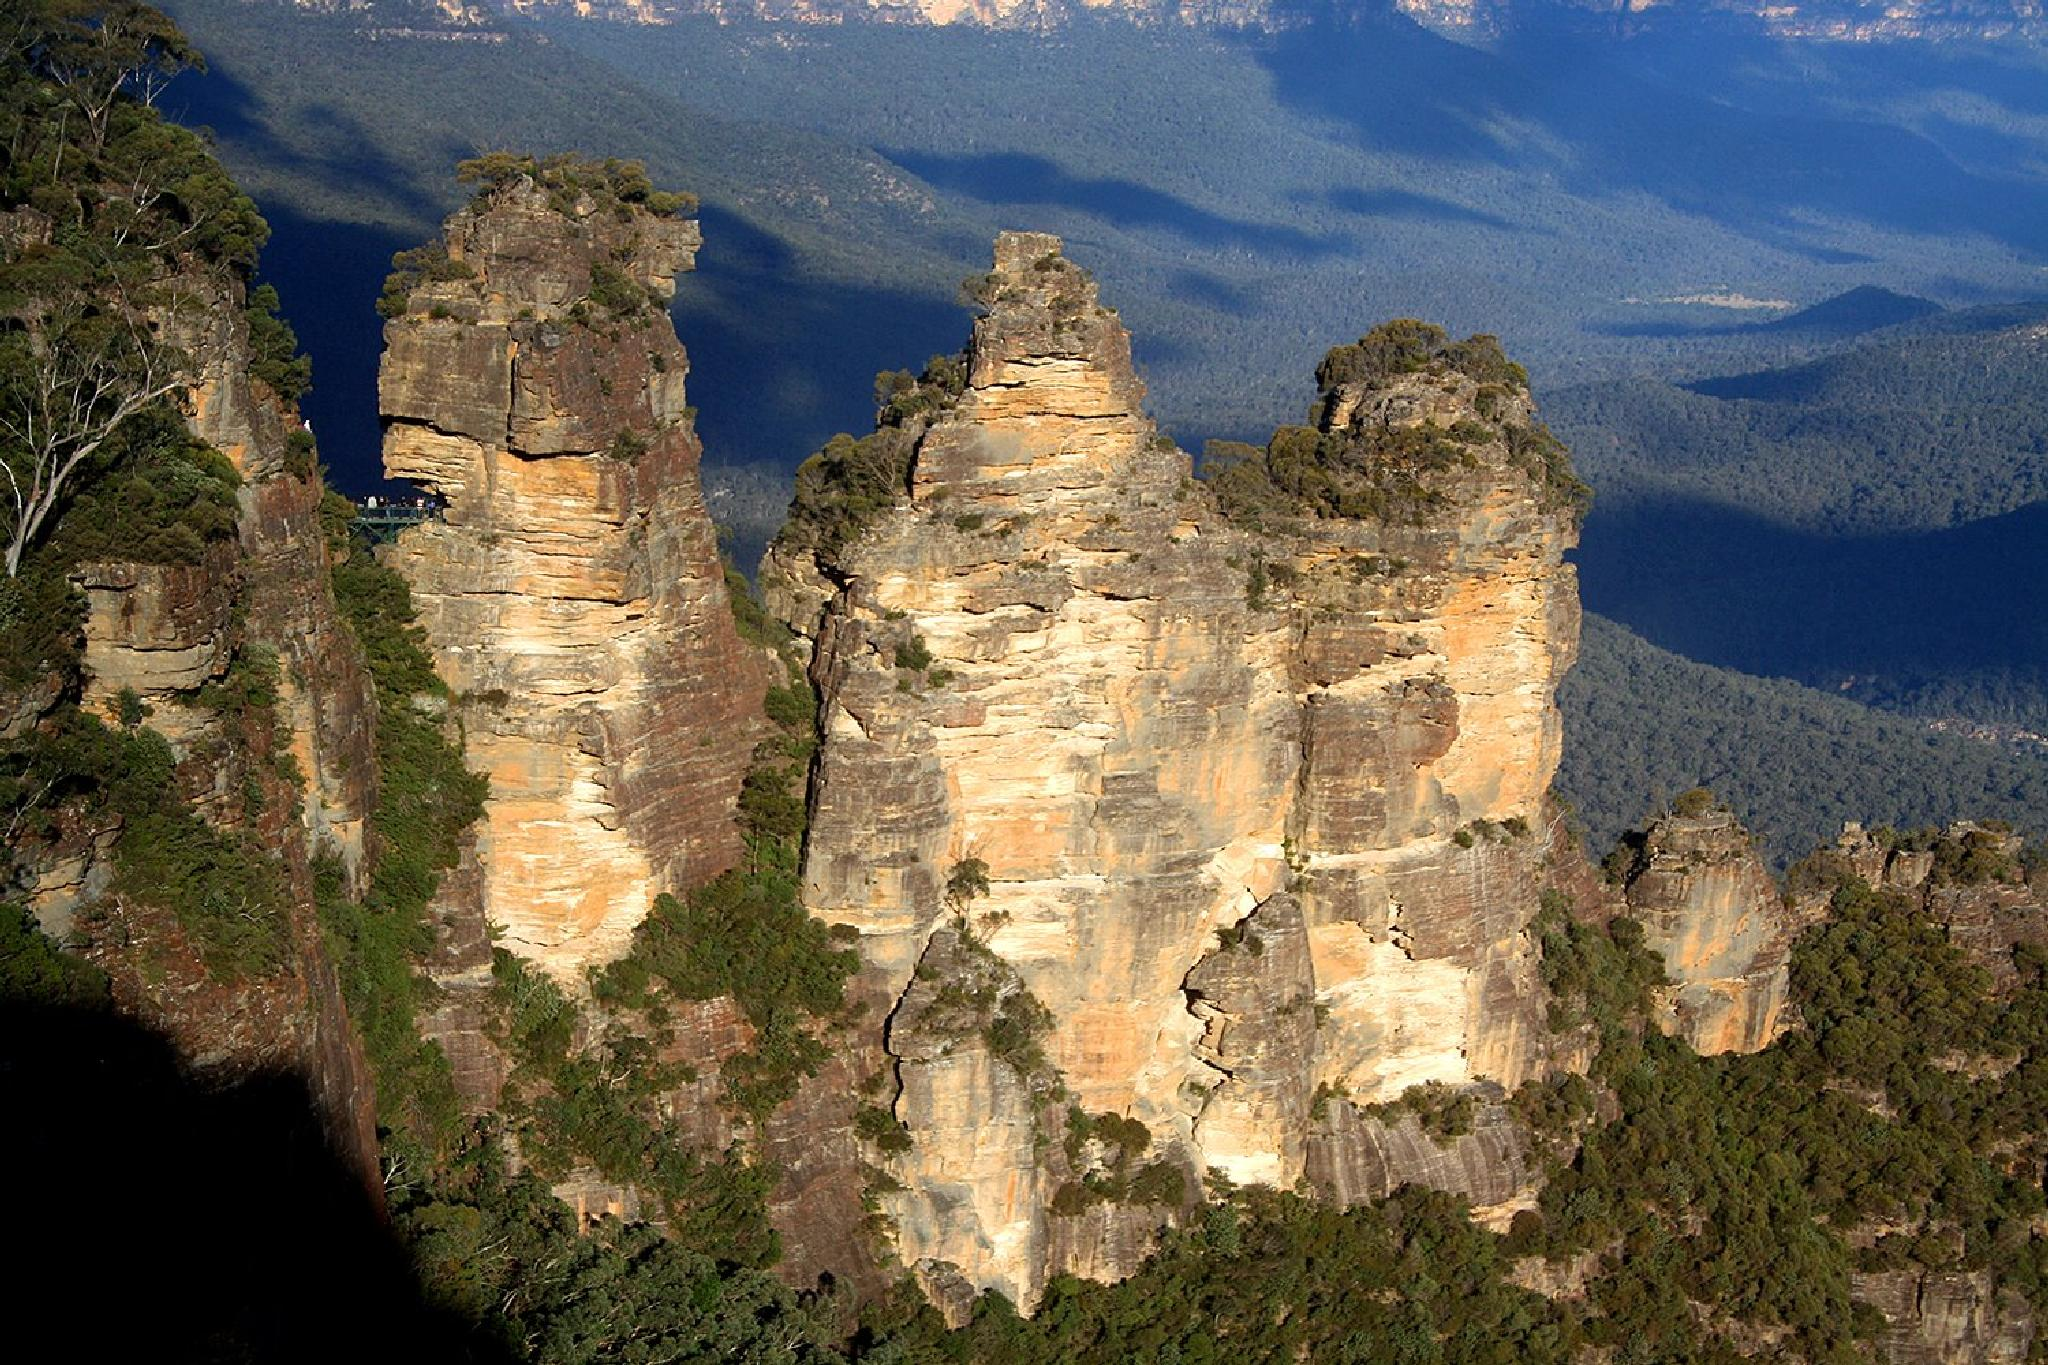 3 Sisters, Echo Point, Blue Mountains, Australia by Richie Henson